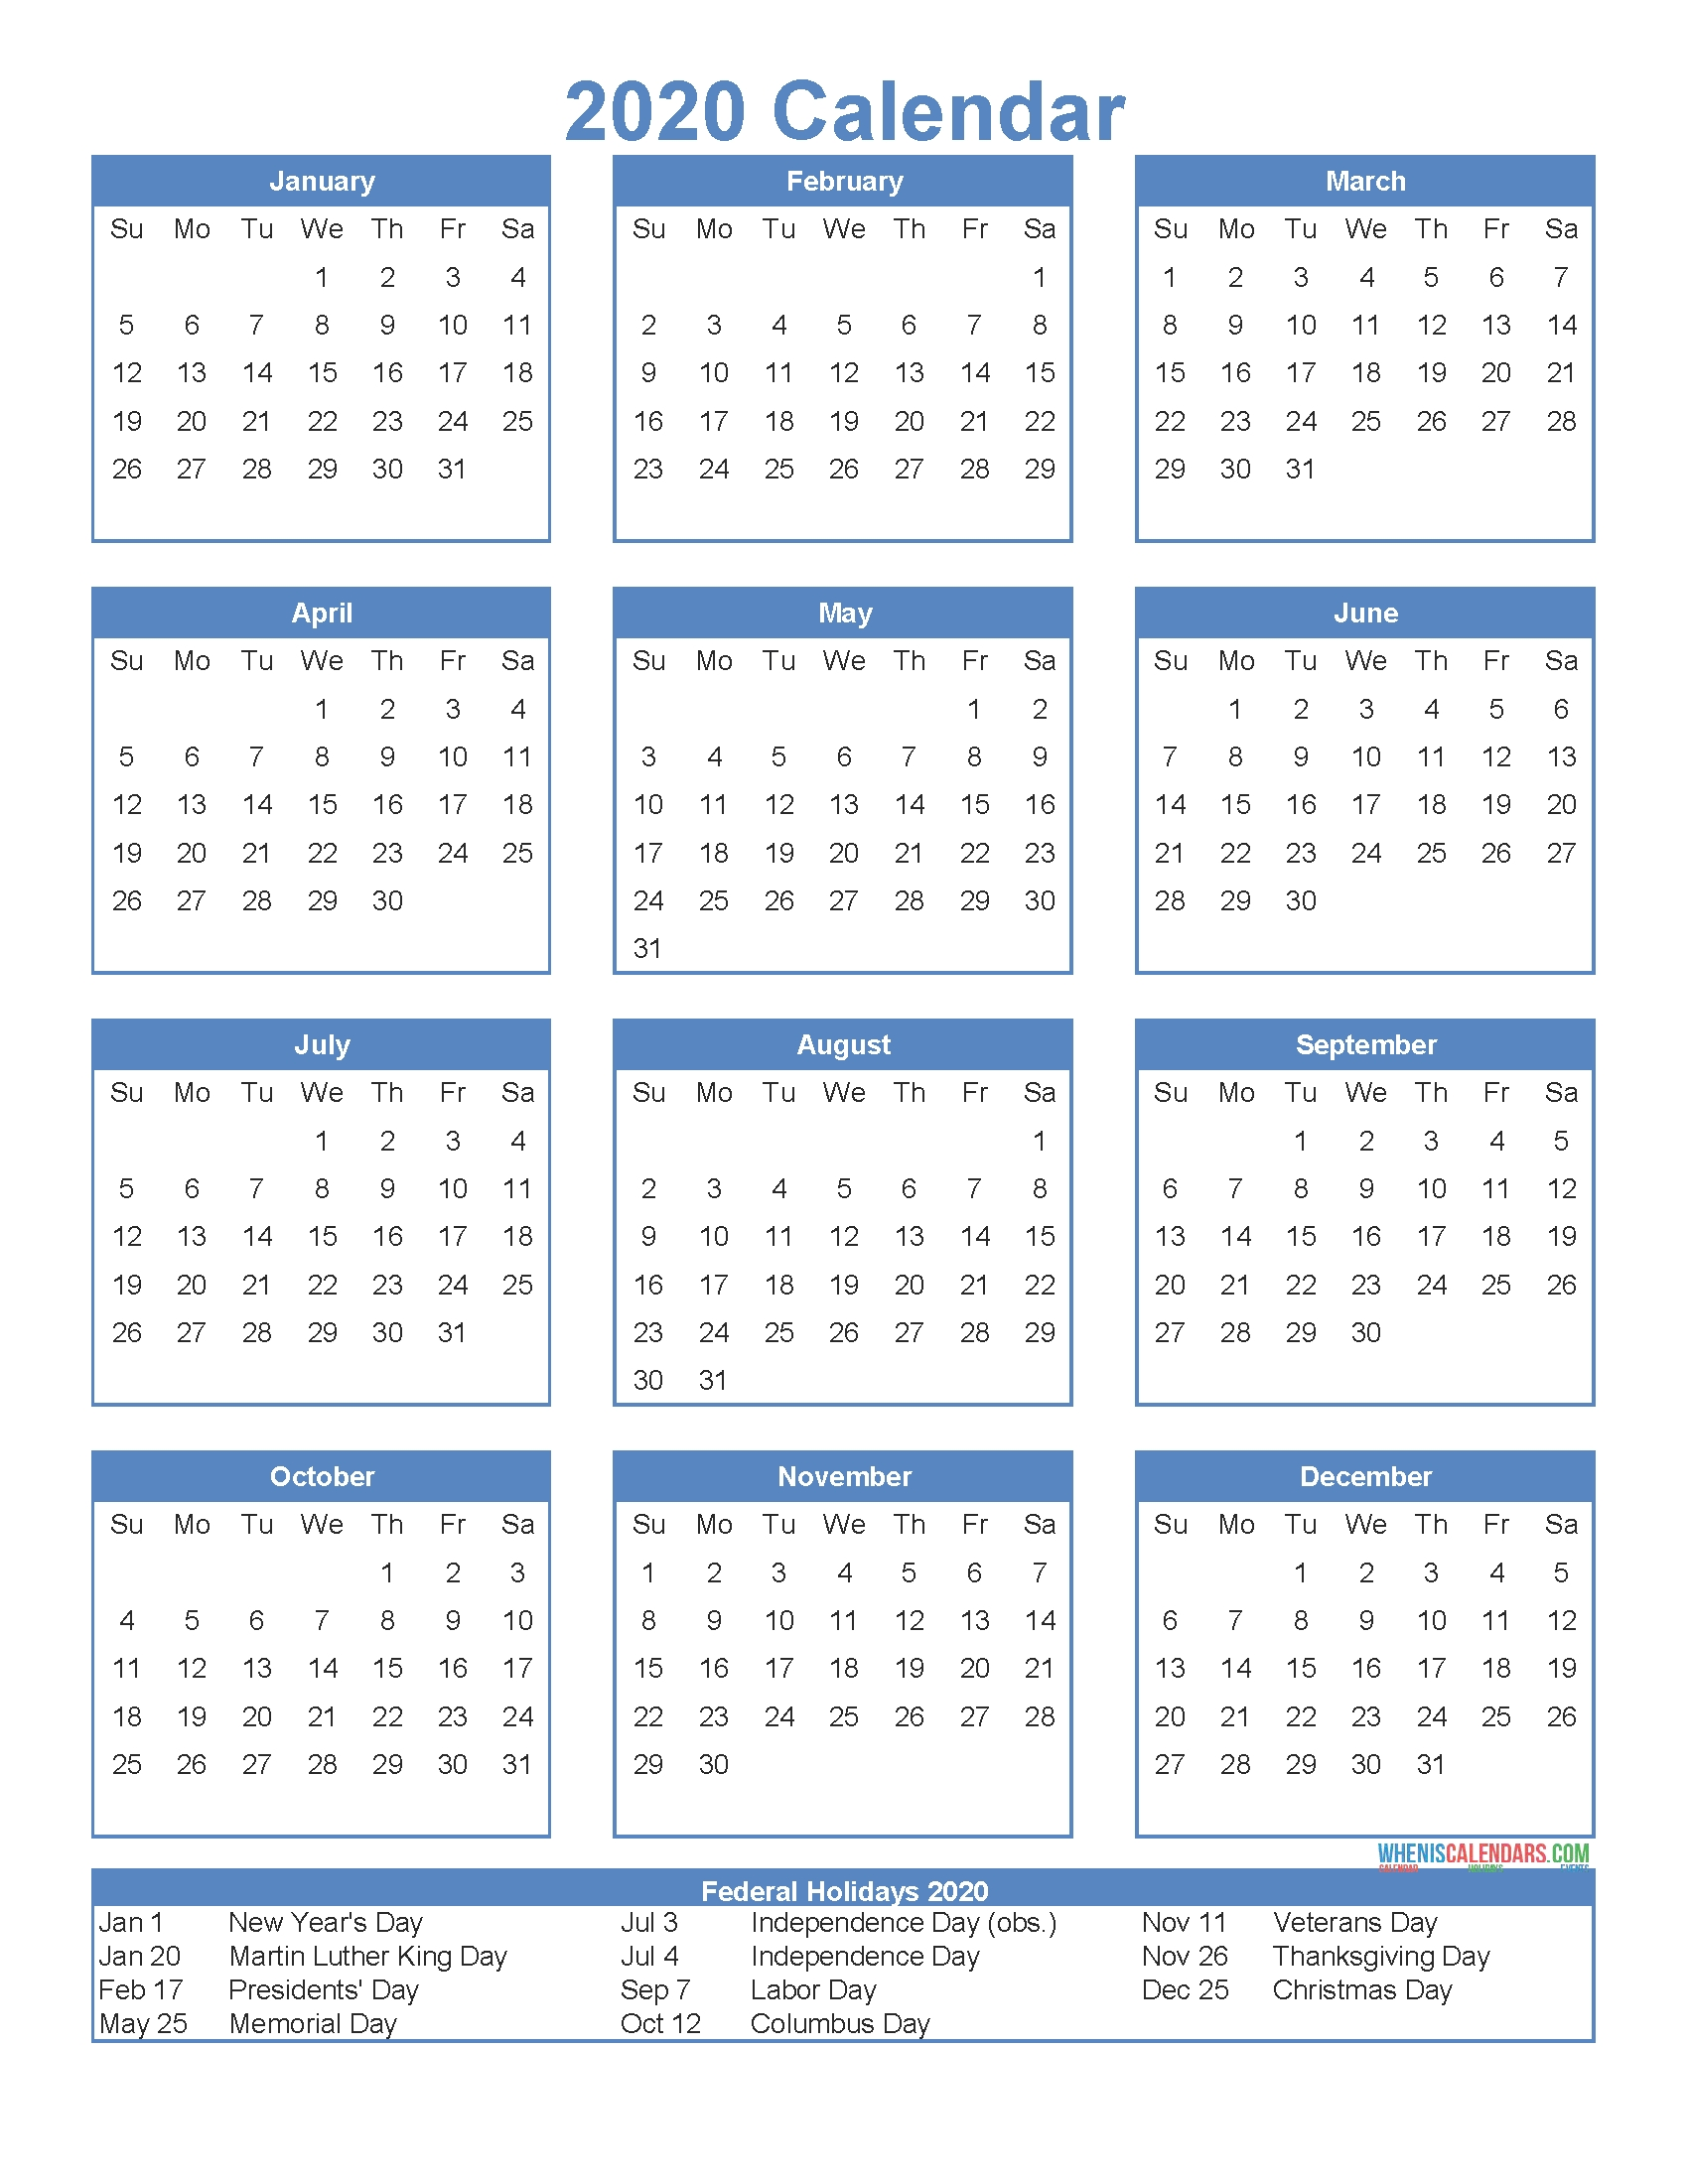 12 Month Calendar On One Page 2020 Printable Pdf, Excel within Calander At A Glance 2020 Excel